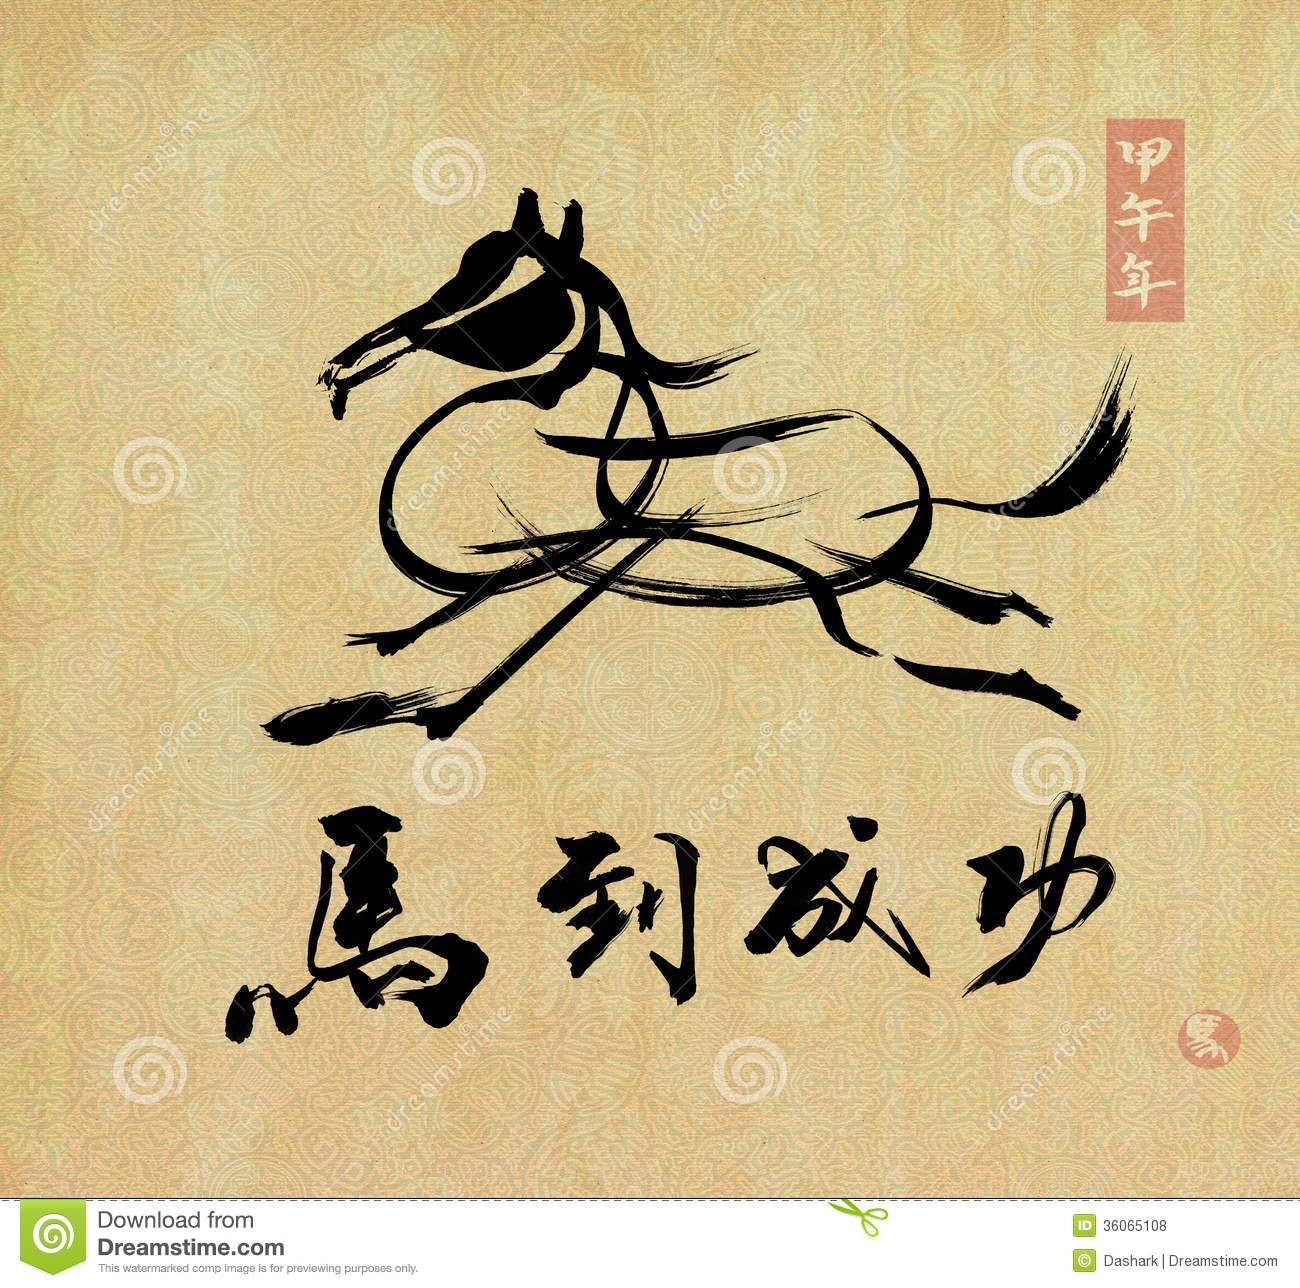 11 Best Images of Horse Calligraphy Chinese Art - Chinese Horse ...